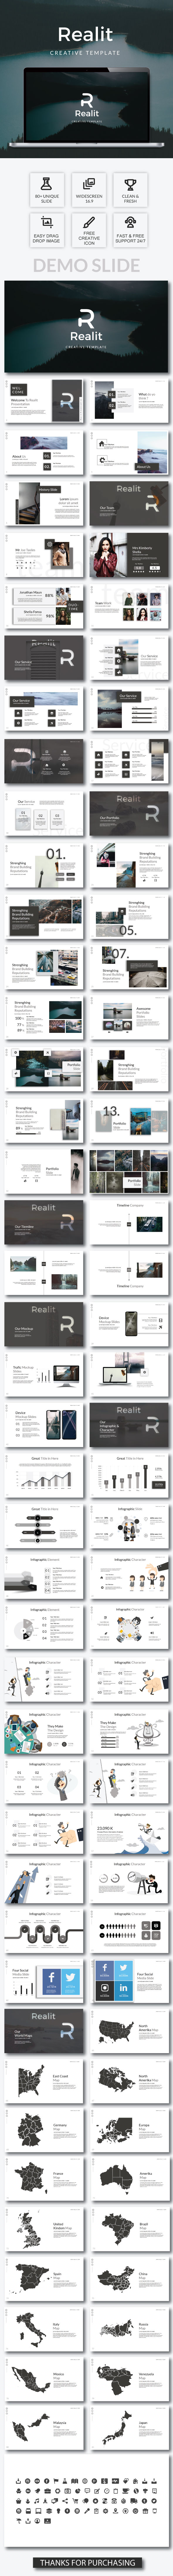 Realit Creative - Powerpoint Template - PowerPoint Templates Presentation Templates